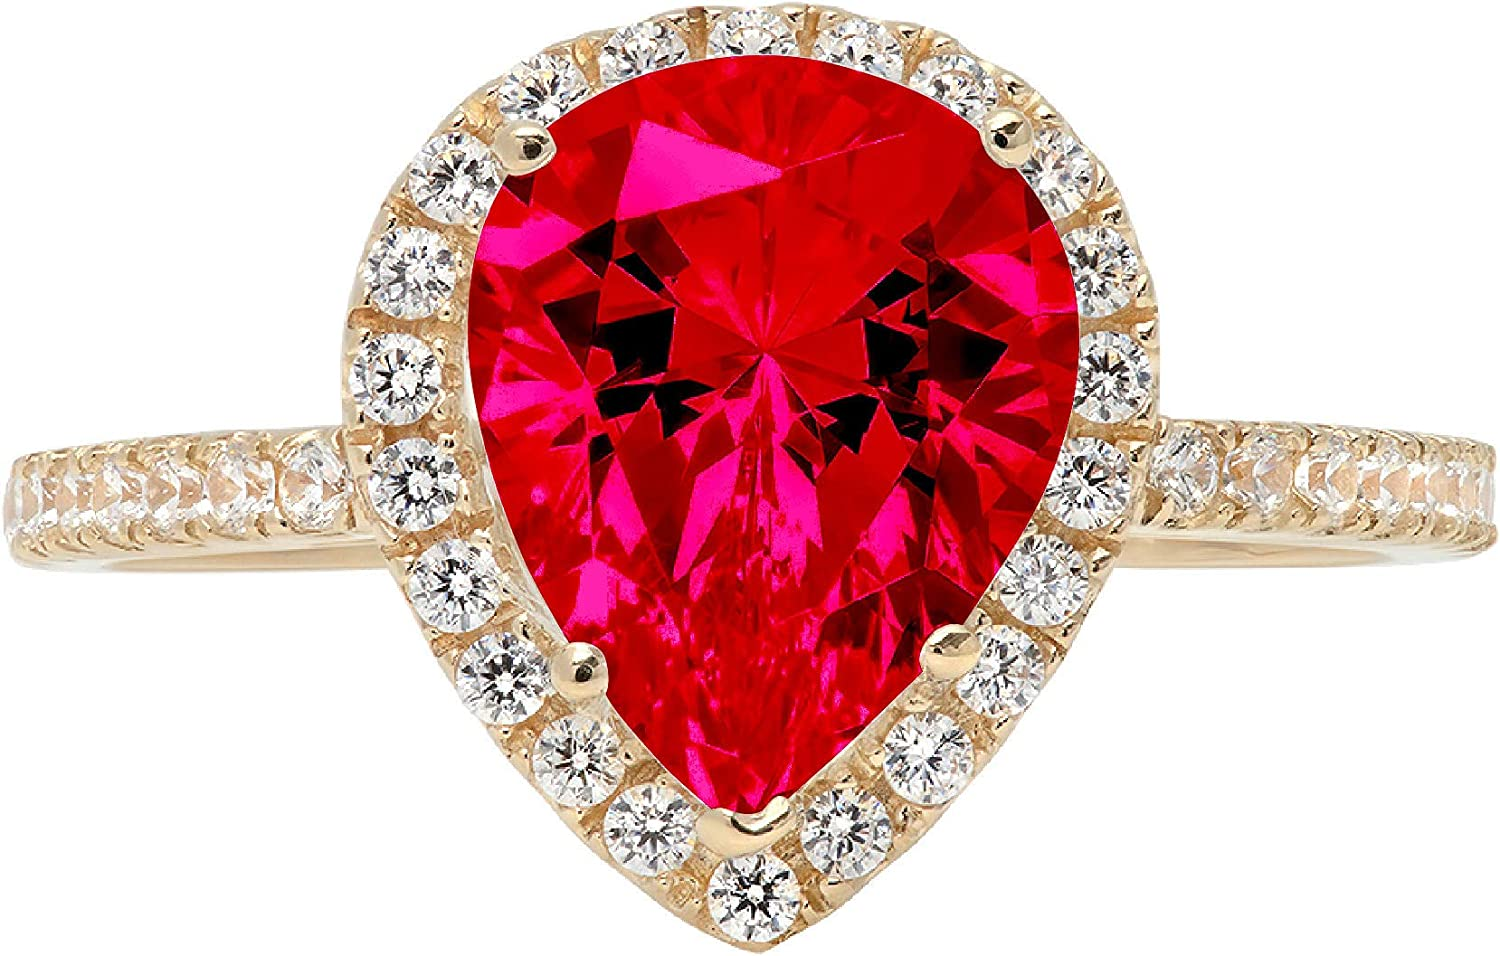 2.45ct Brilliant Pear Cut Solitaire with Accent Halo Flawless Classic Pink Tourmaline Ideal Engagement Promise Anniversary Bridal Wedding Designer Ring 18k Yellow Gold